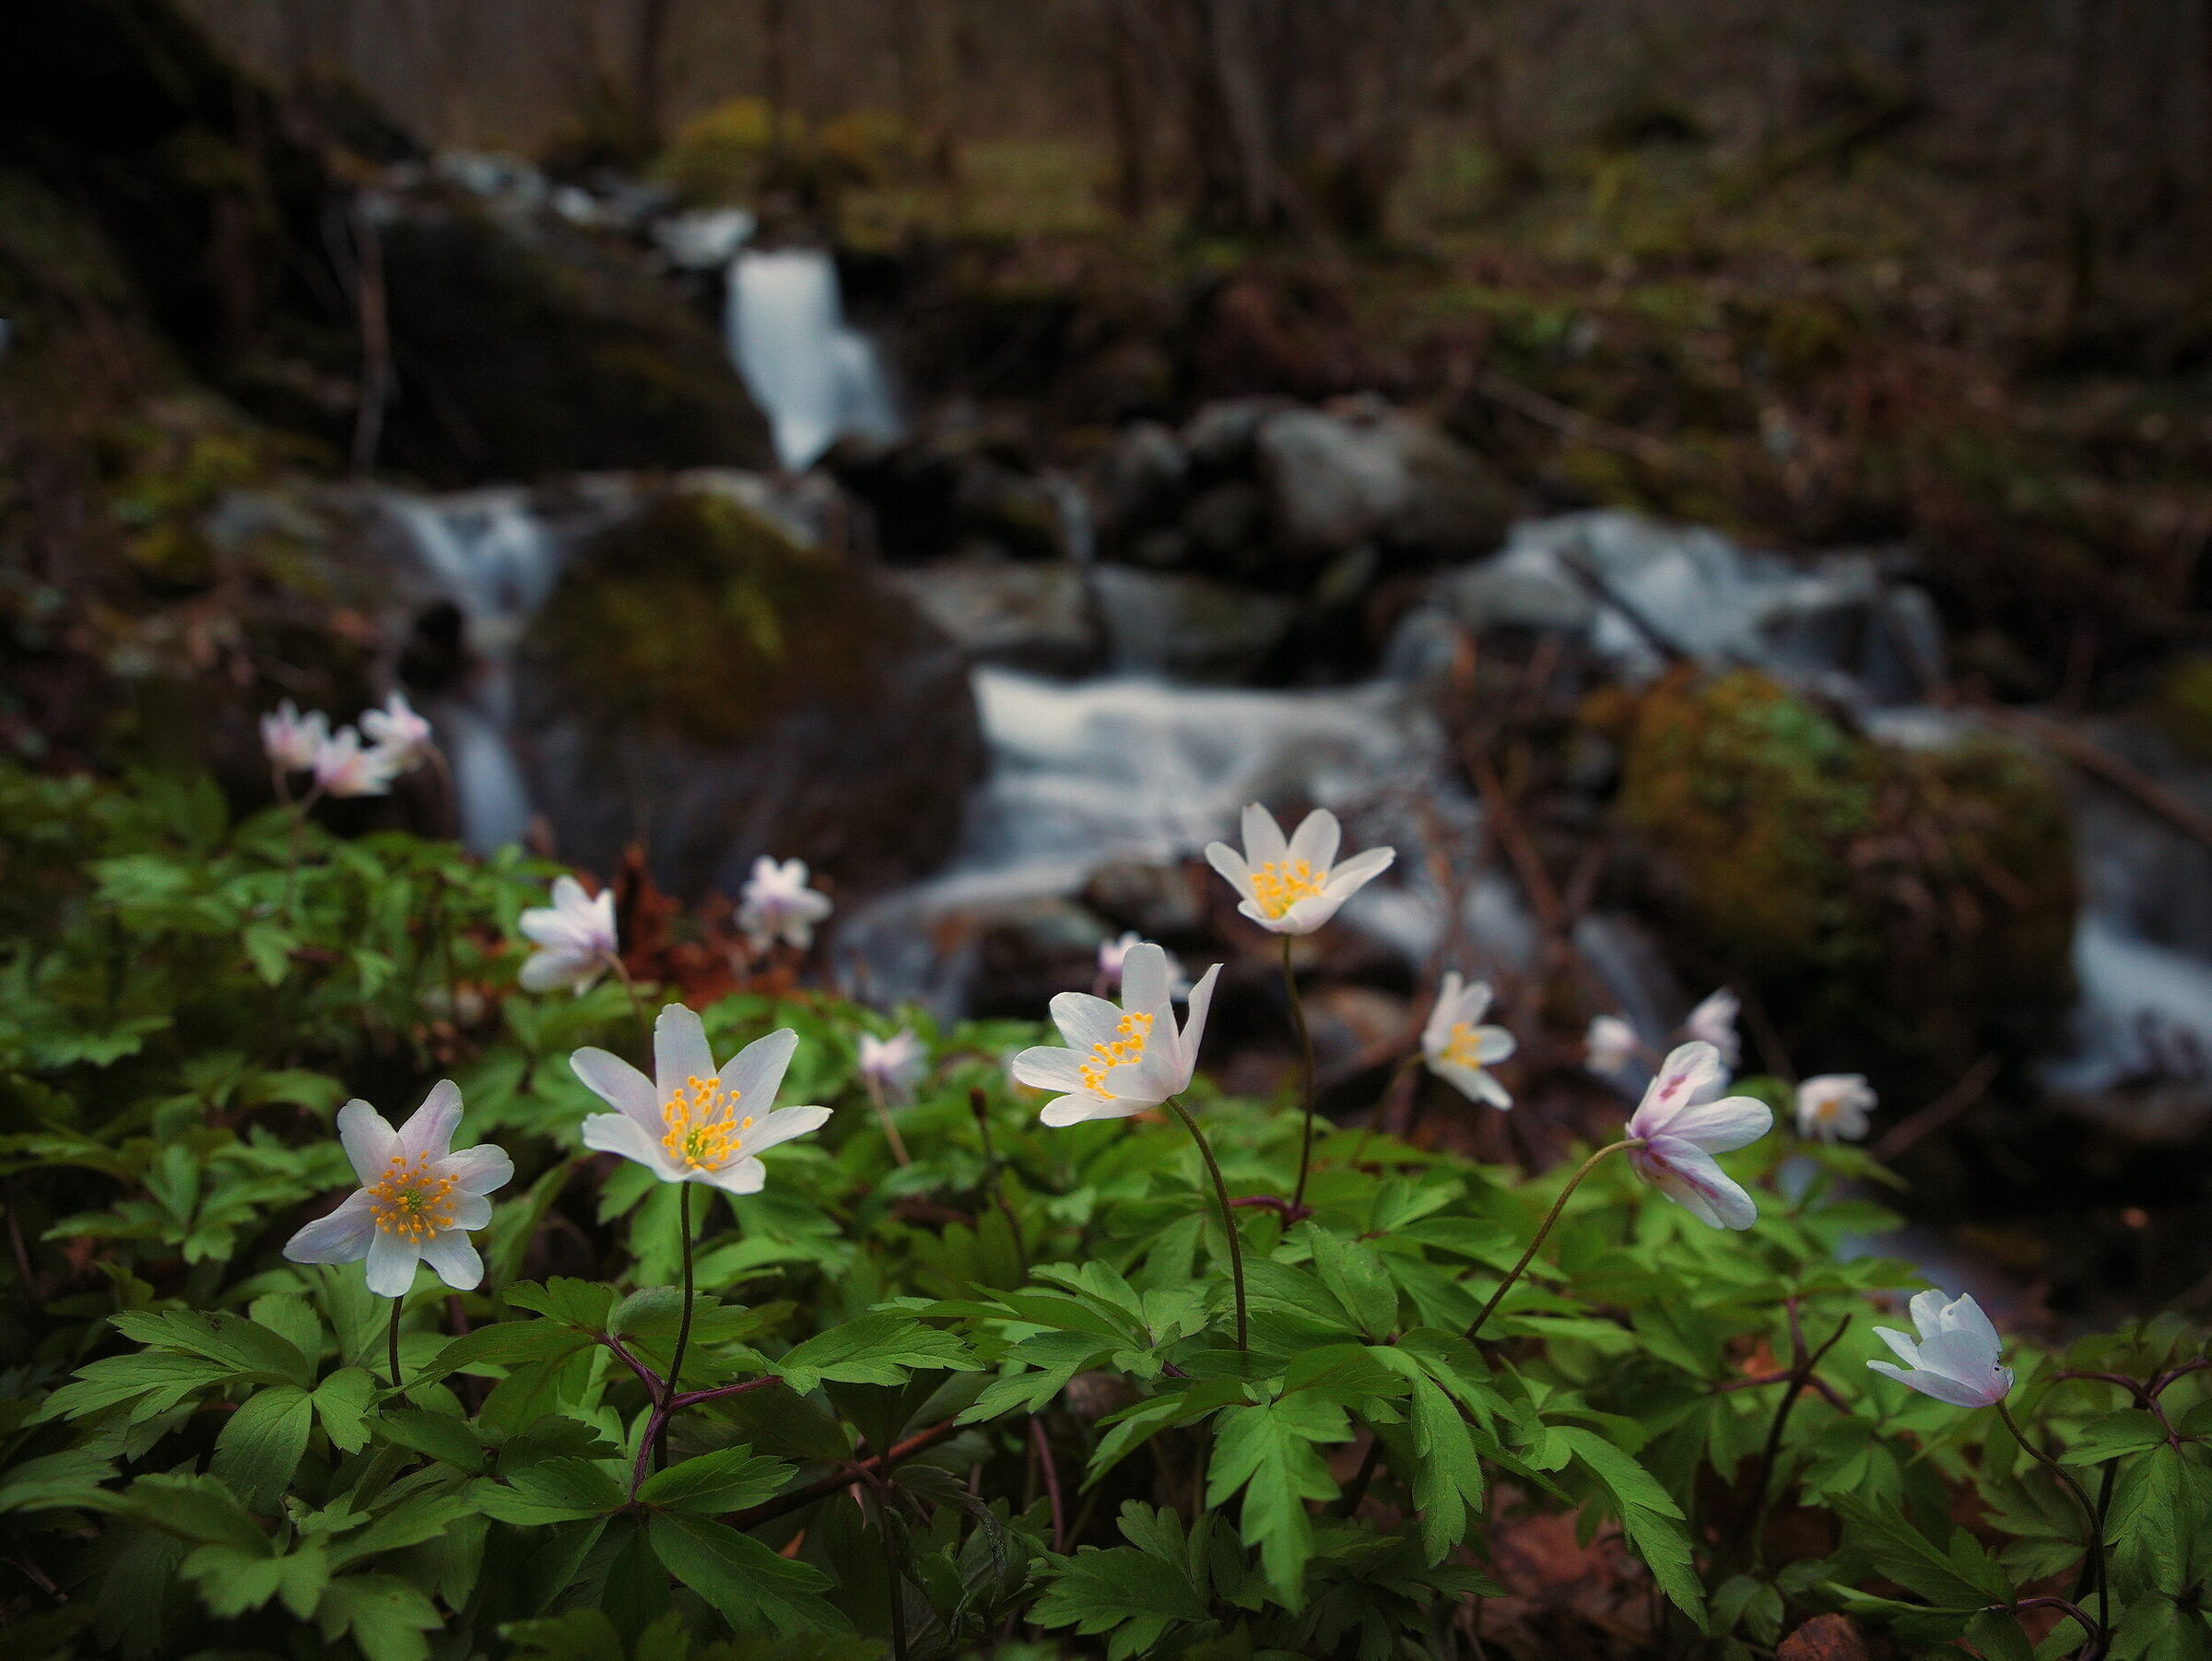 Anemones in the Woods...